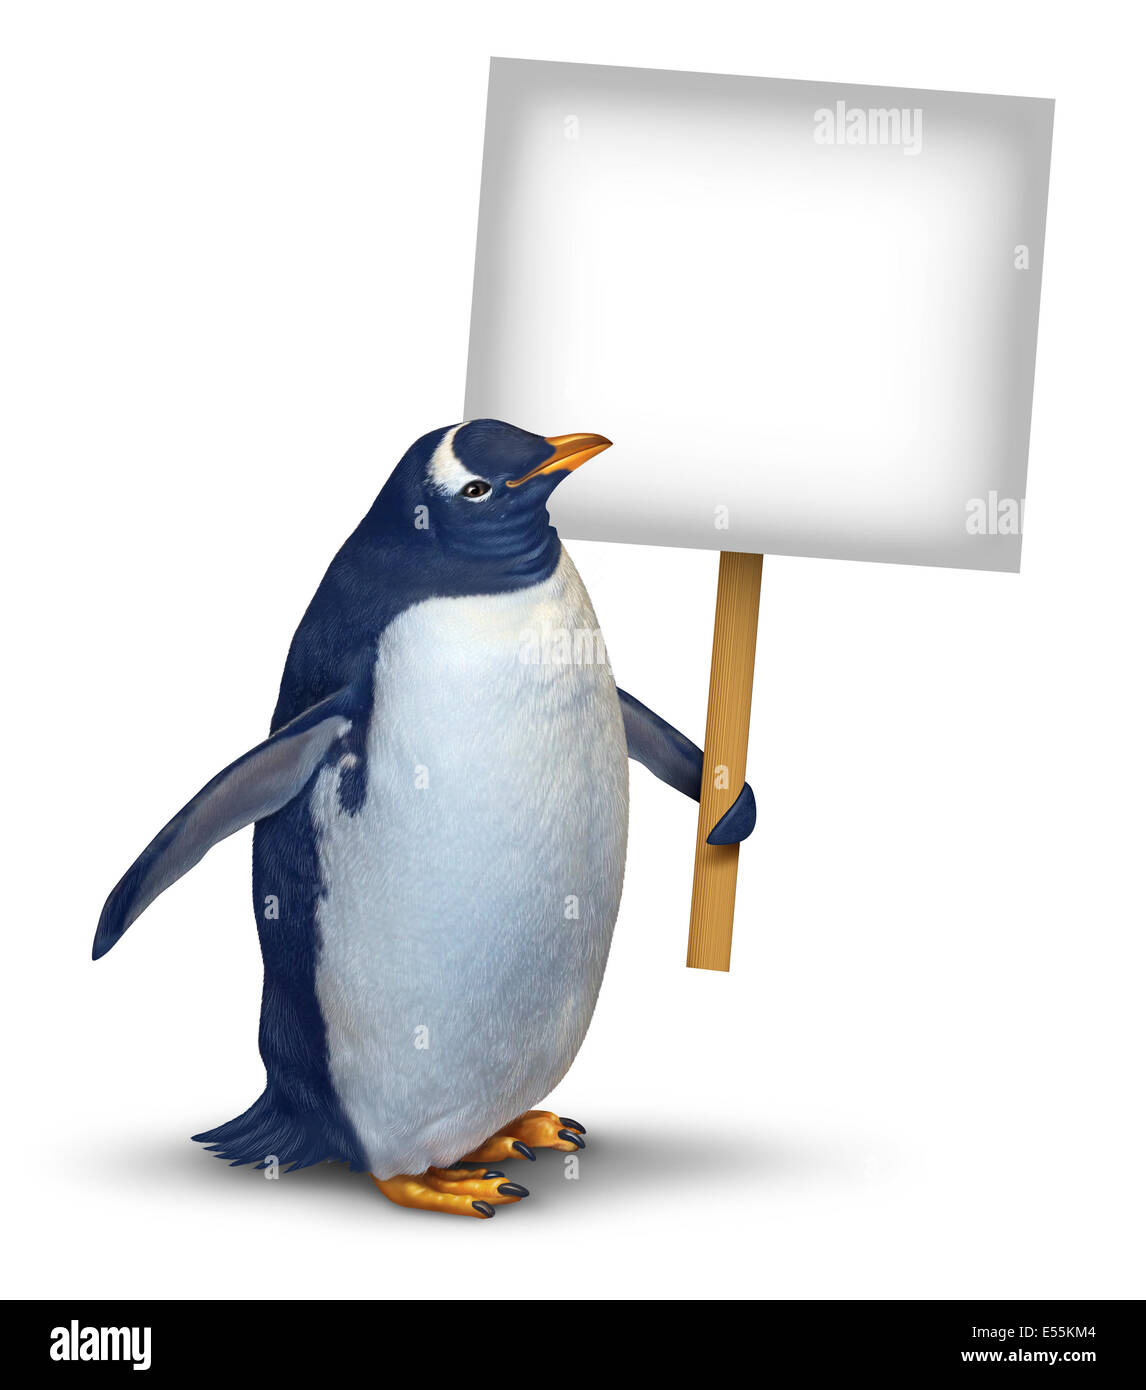 Penguin holding a blank card sign as a cute polar bird with a smiling happy expression supporting and communicating - Stock Image